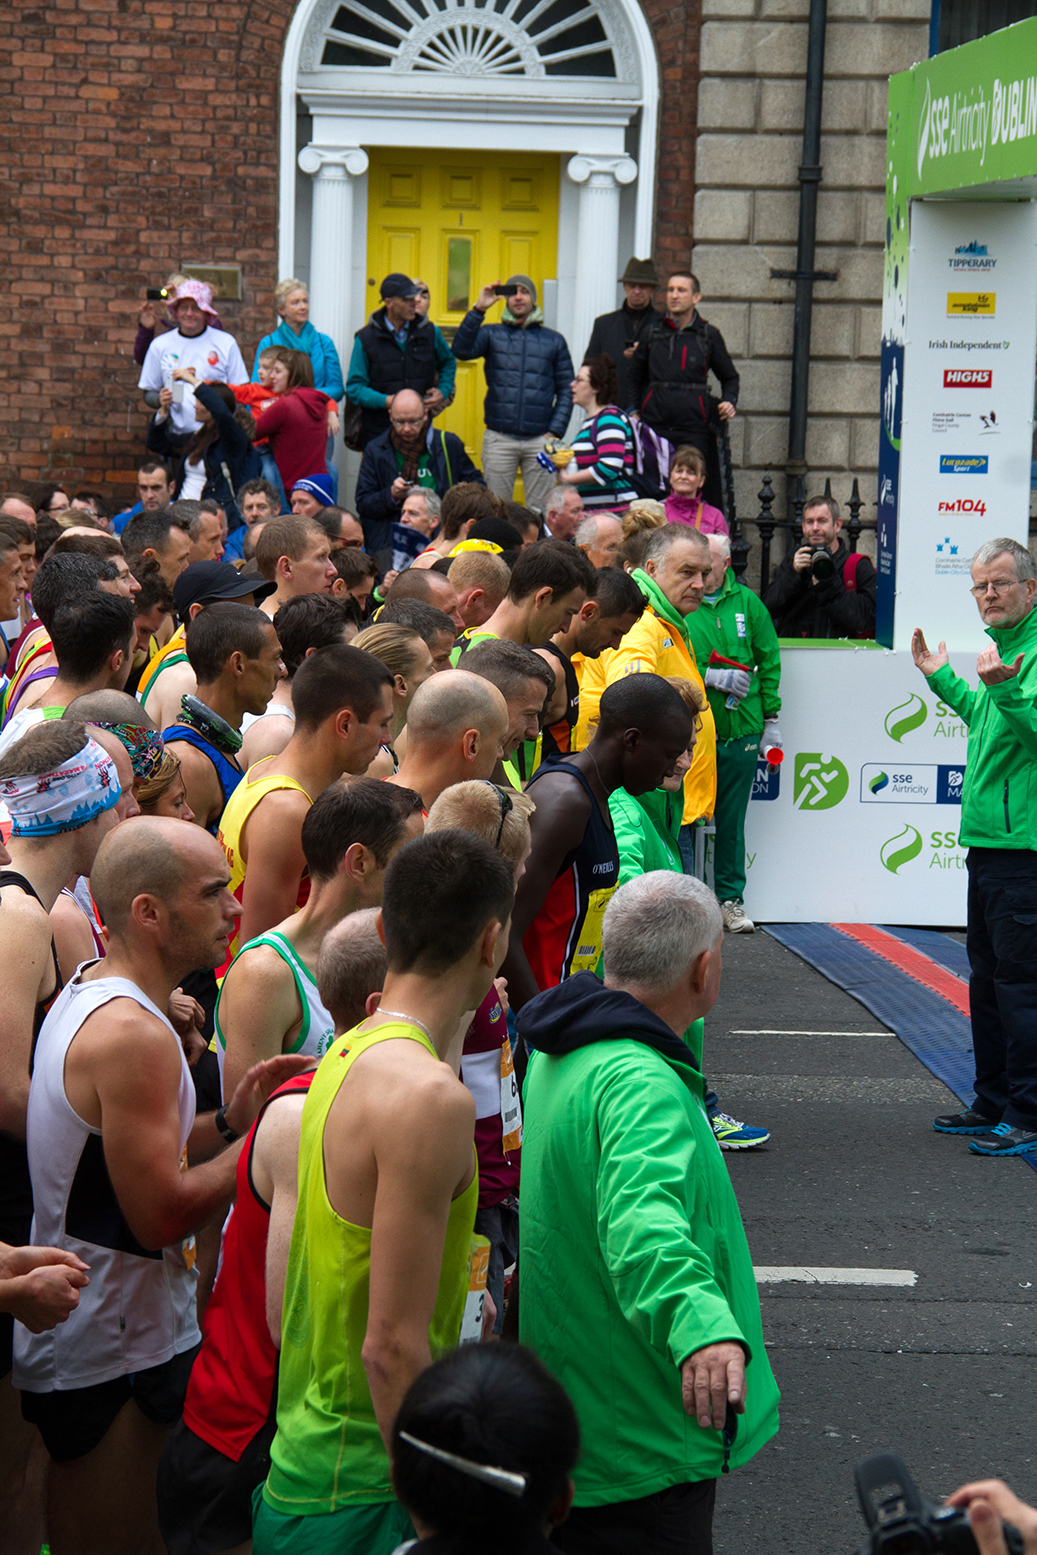 Start line of the dublin city marathon